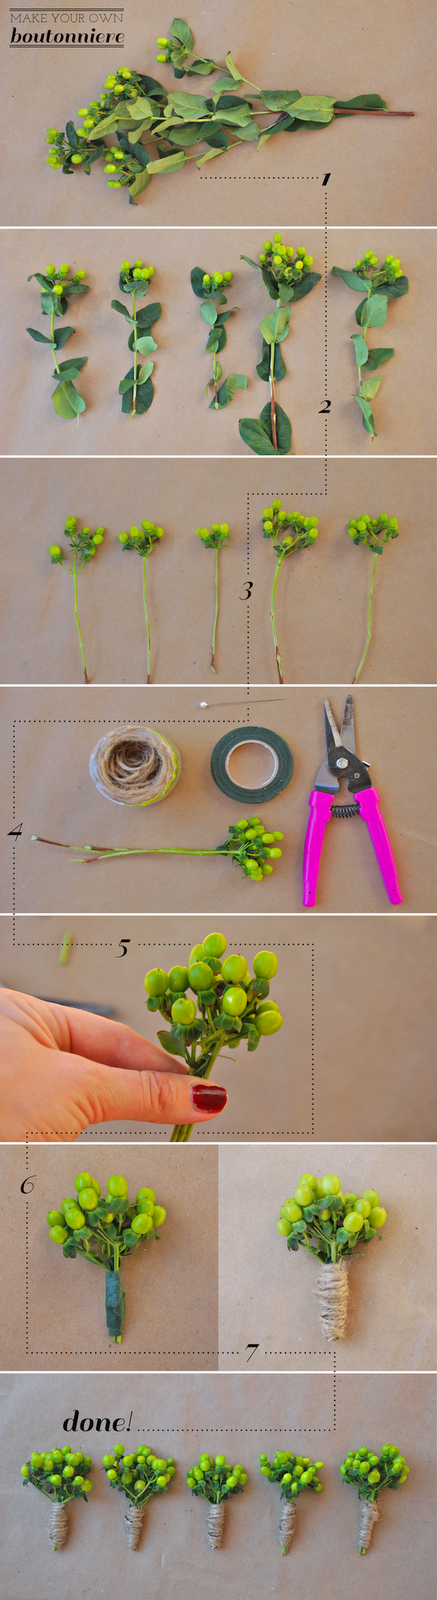 how to make a boutonniere with fake flowers